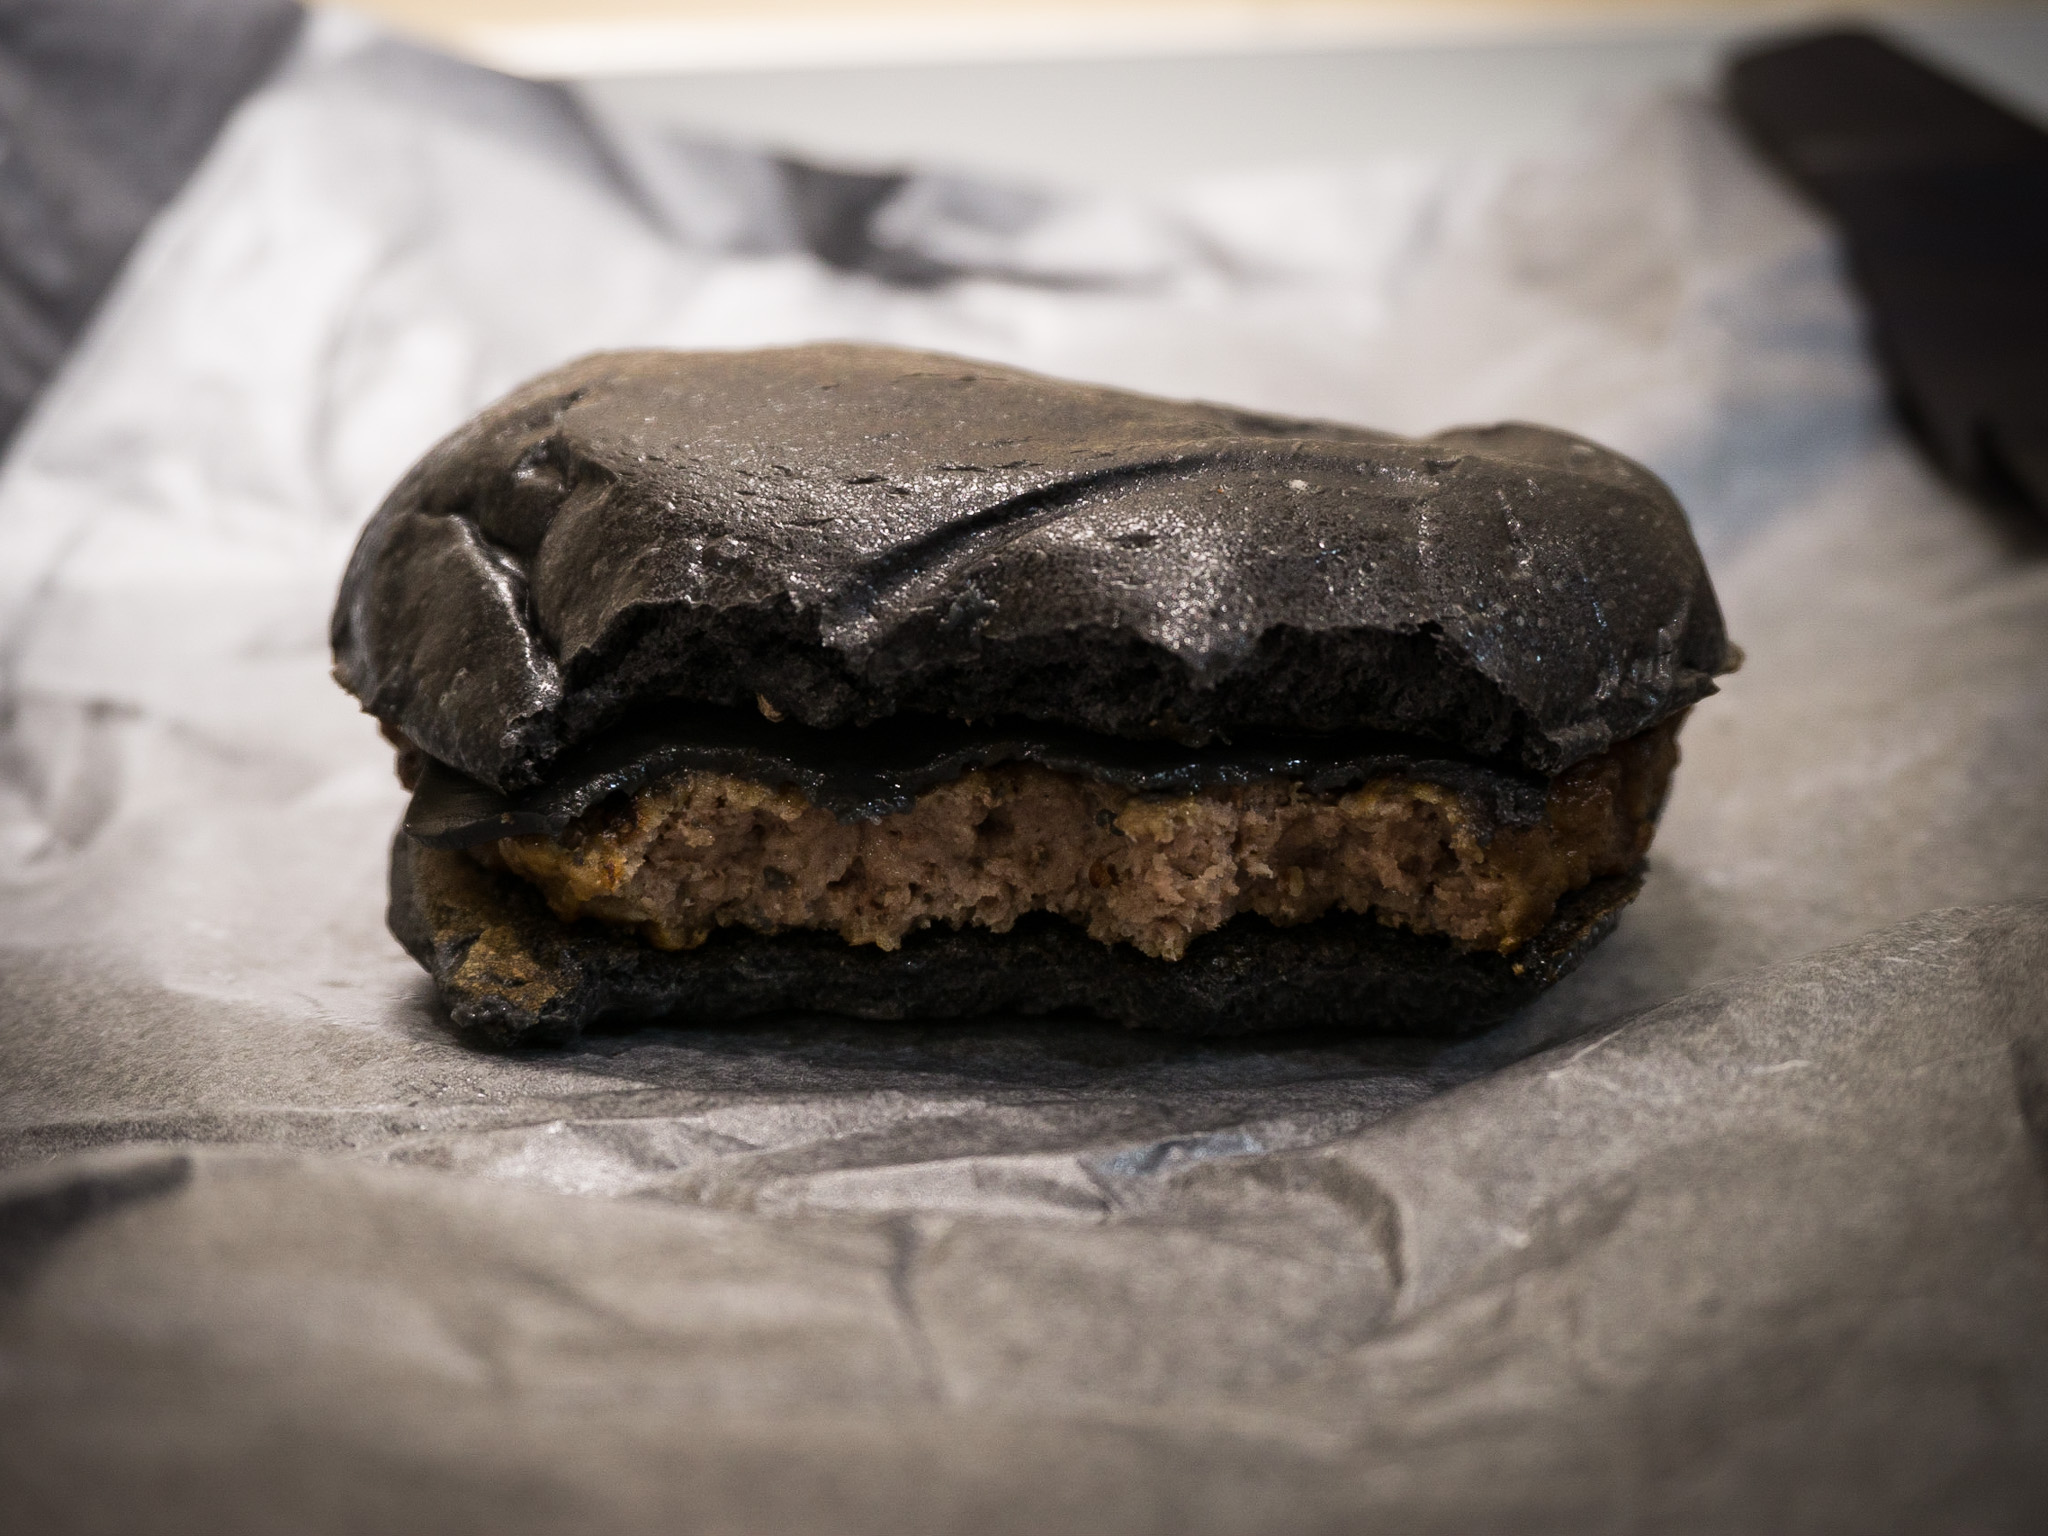 Burger King's scary Black Burger